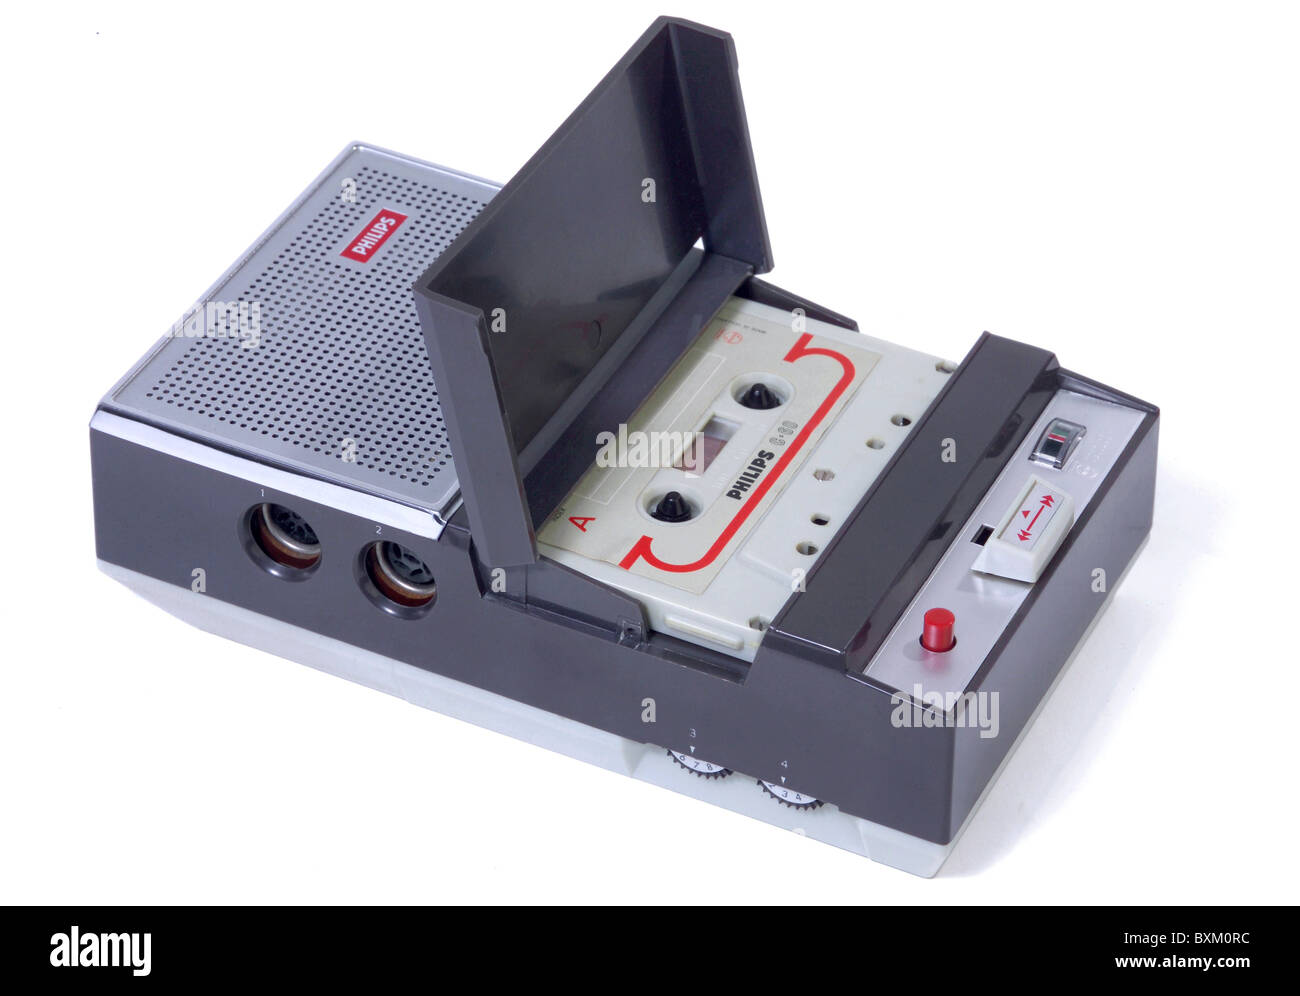 technics, Philips cassette recorder 3300, Netherlands, 1963, technics, historic, historical, 1960s, 60s, 20th century, - Stock Image